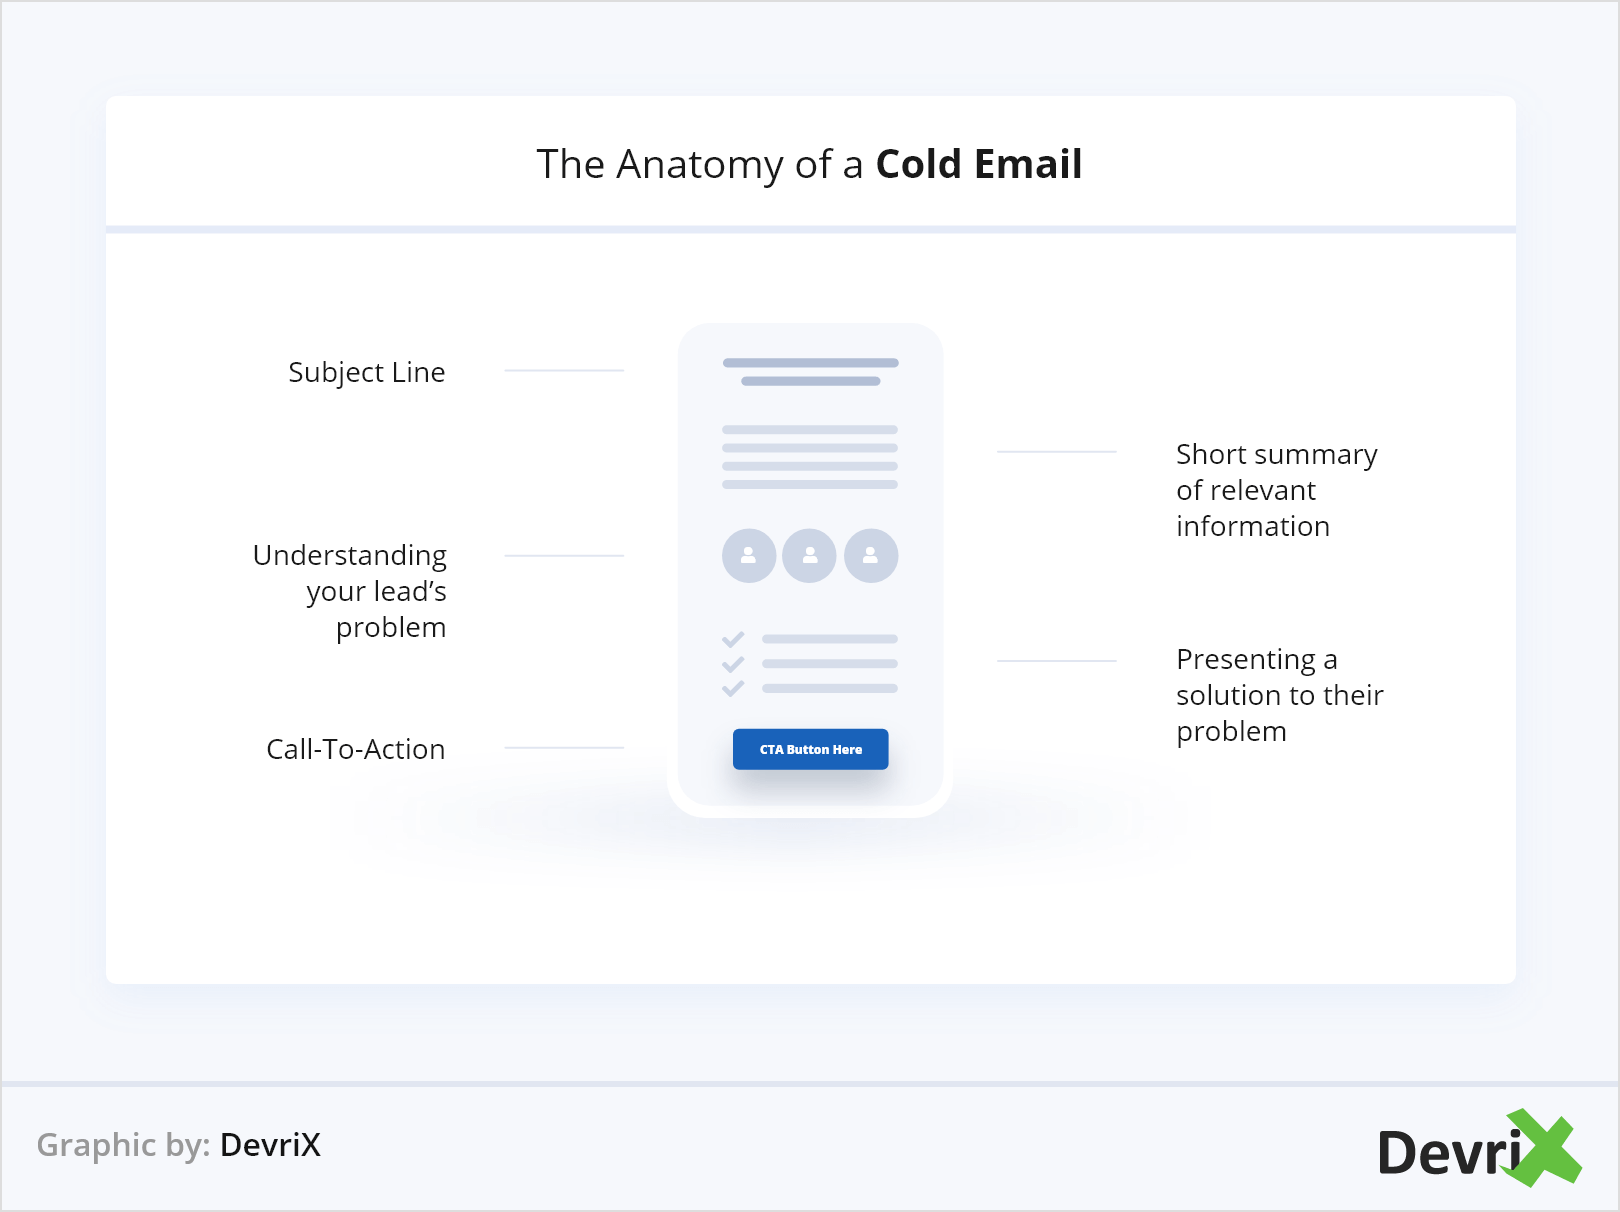 the-anatomy-of-a-cold-email